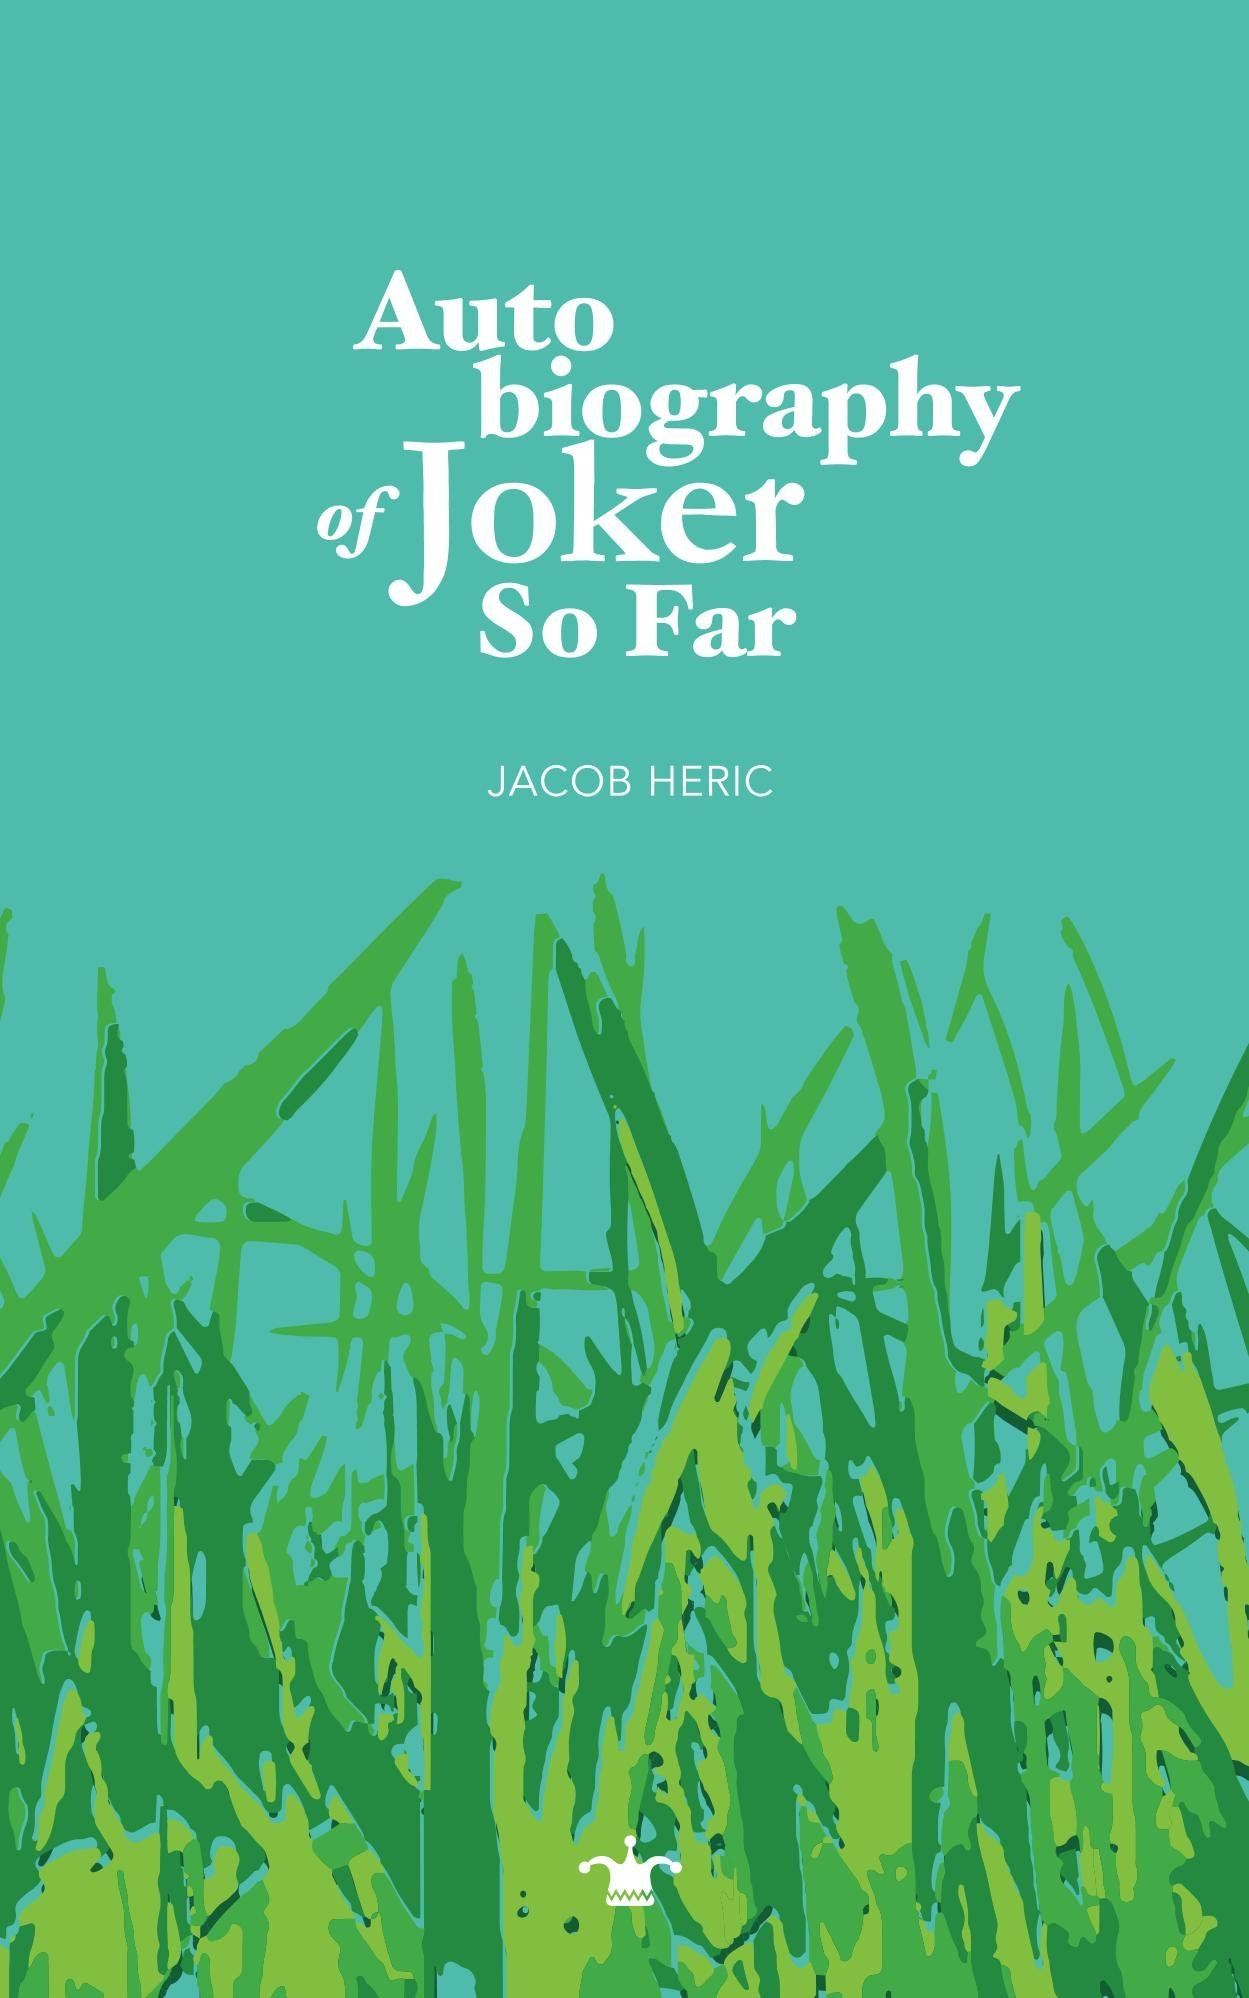 Autobiography of Joker So Far by Jacob Heric Book Cover